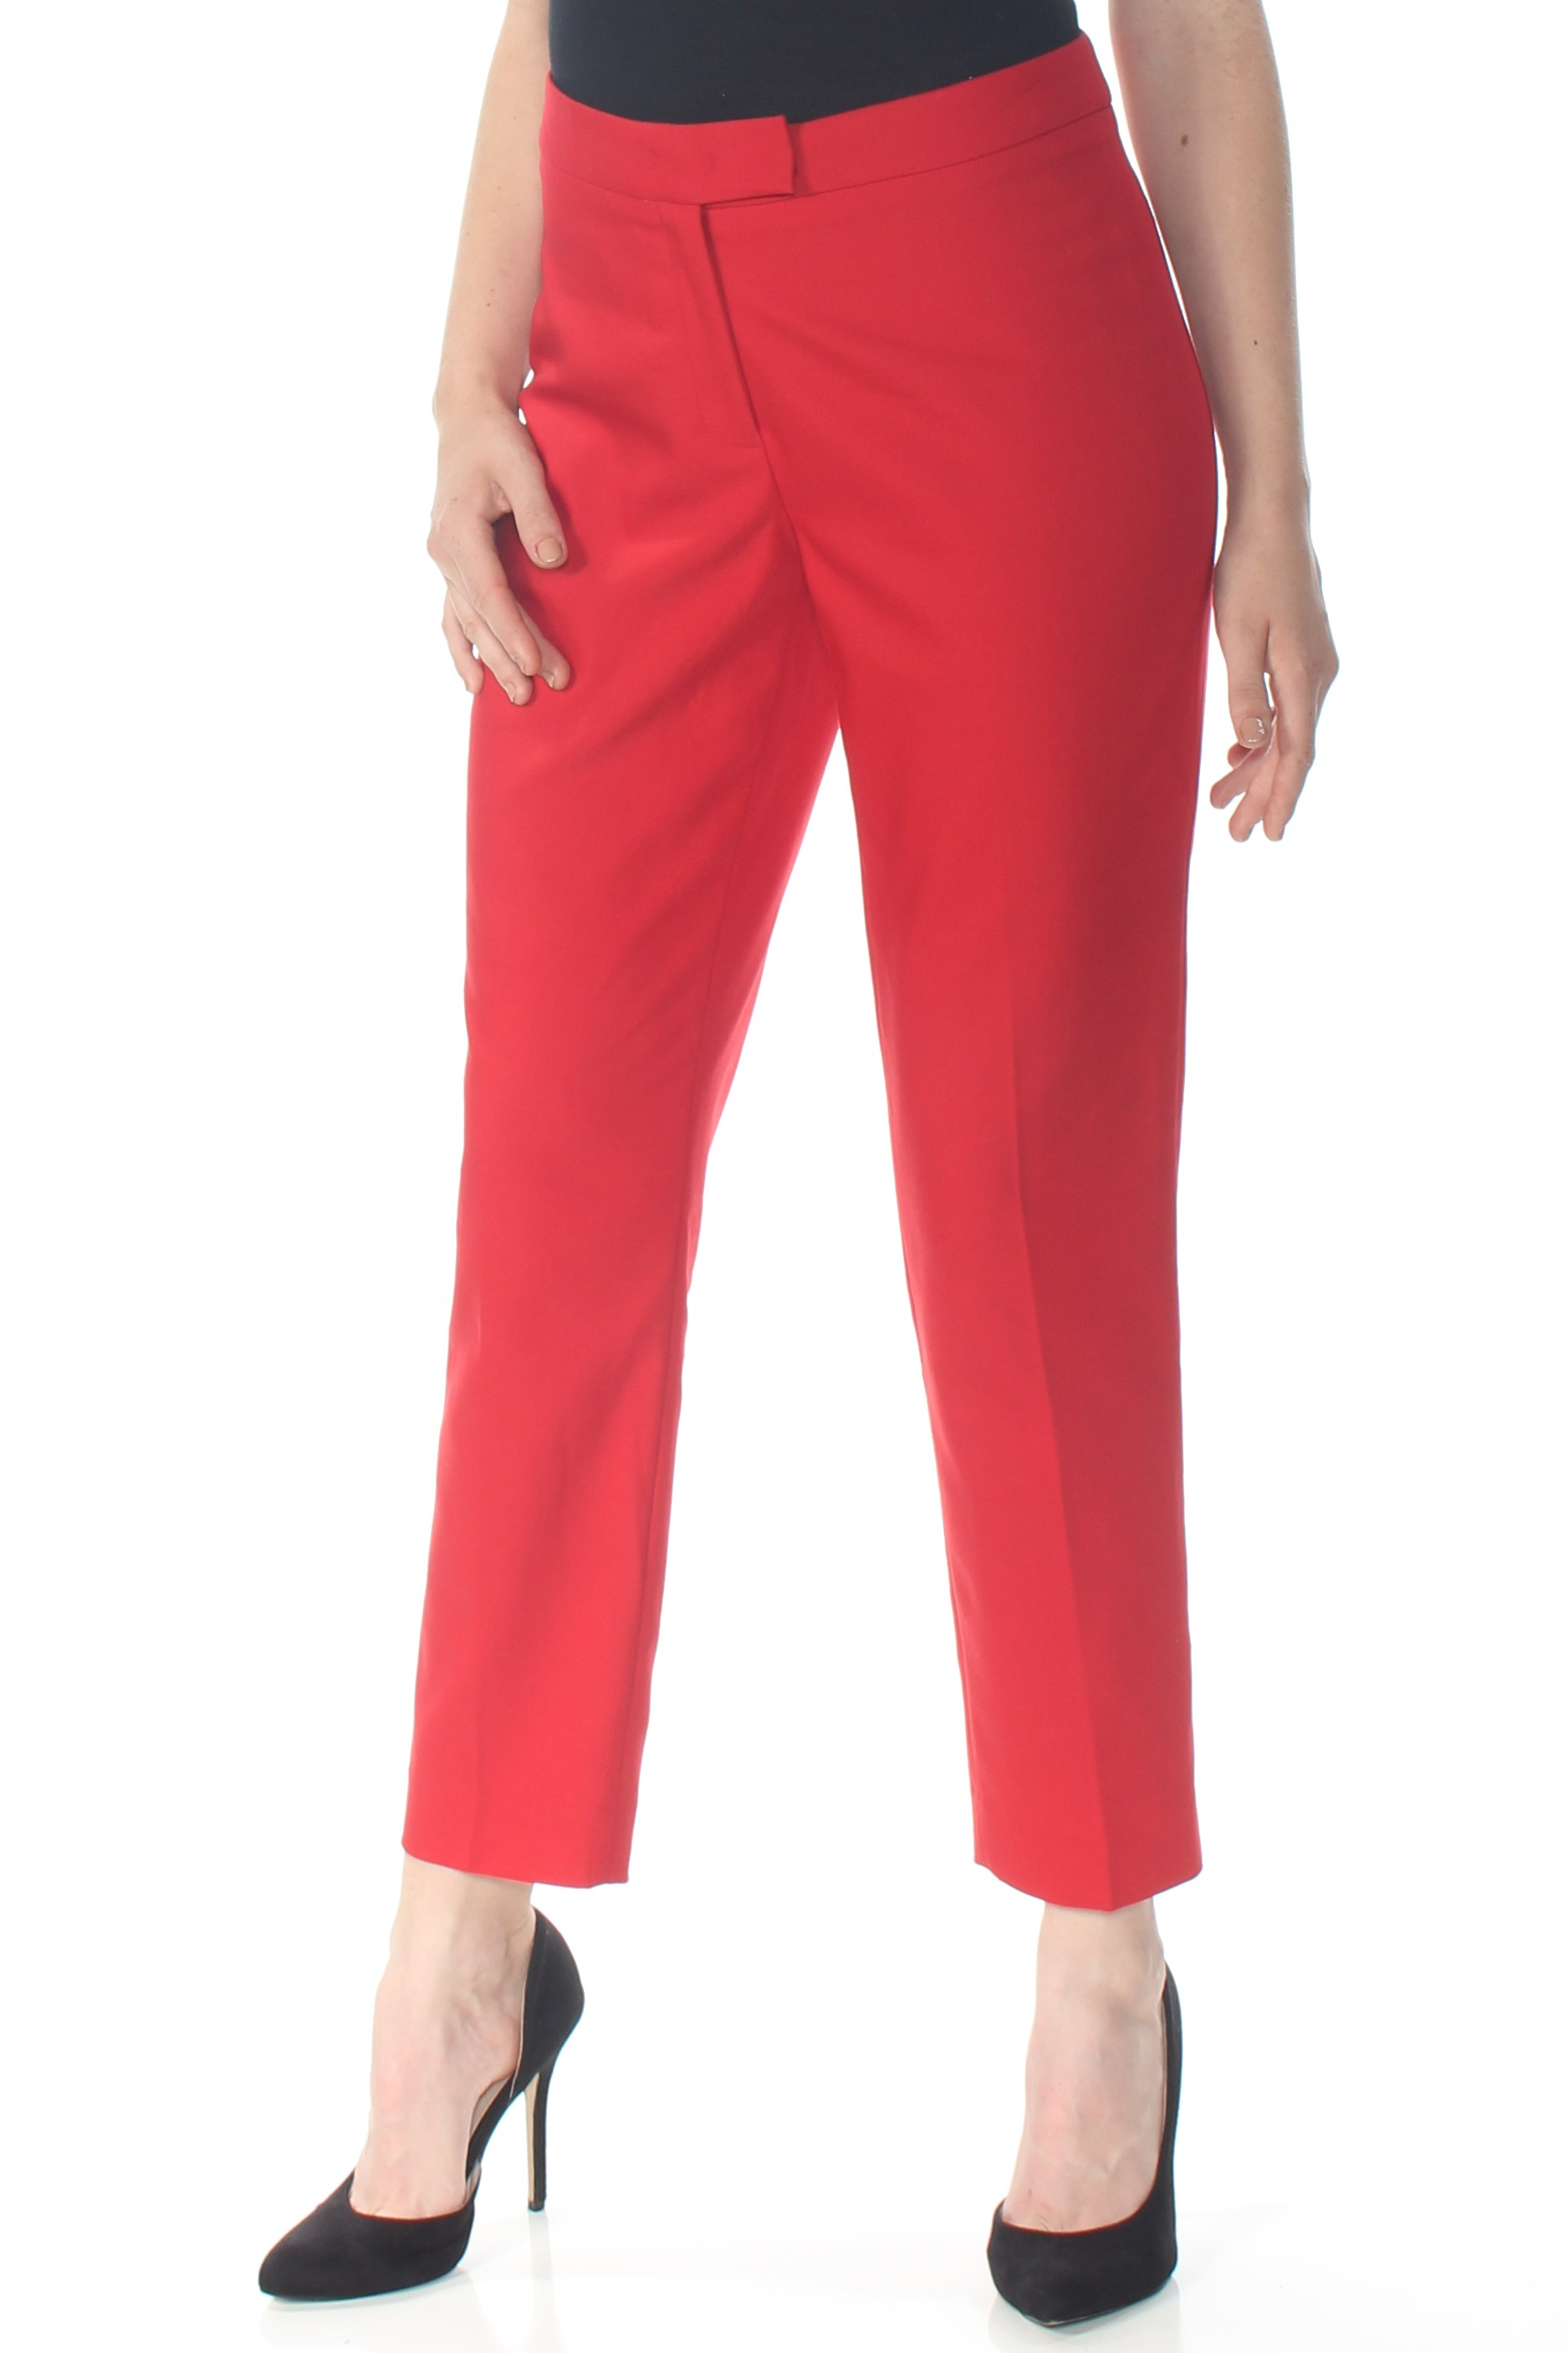 f4c1cbb9206bf Details about ANNE KLEIN $89 Womens New 1311 Red Slim Straight Leg Crepe  Pants 8 B+B